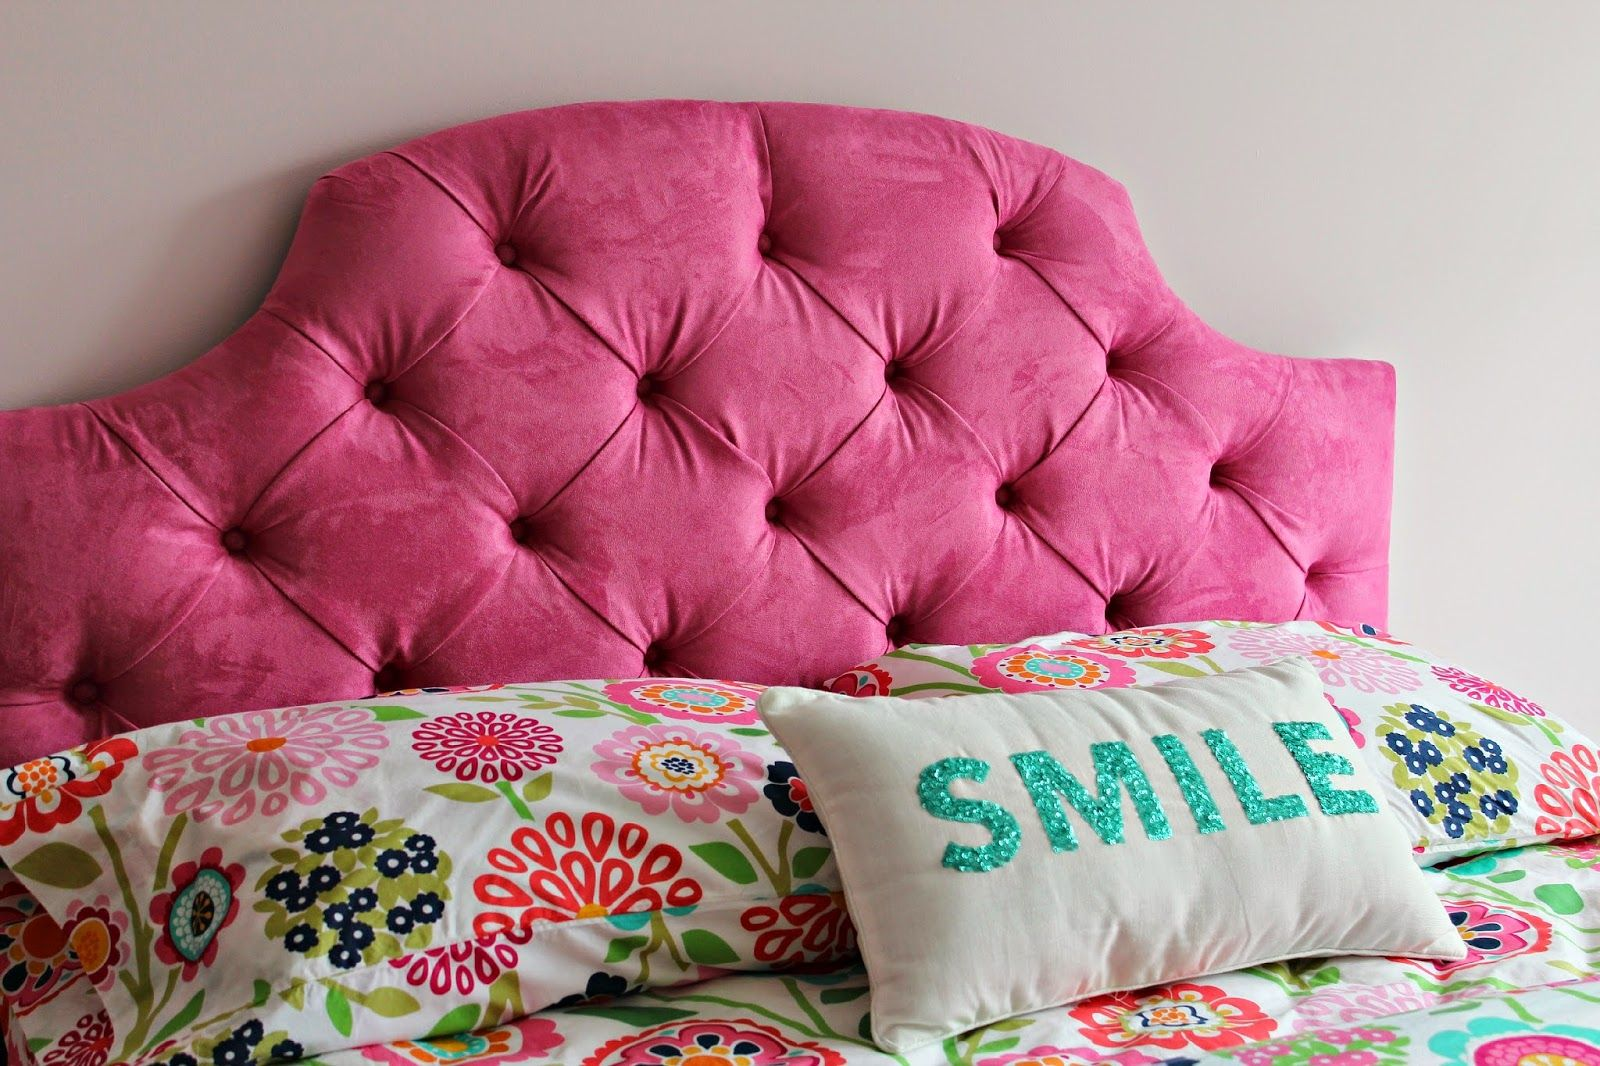 news buys get ideal home is key perfect these five headboard pink blush bring on with very trending board